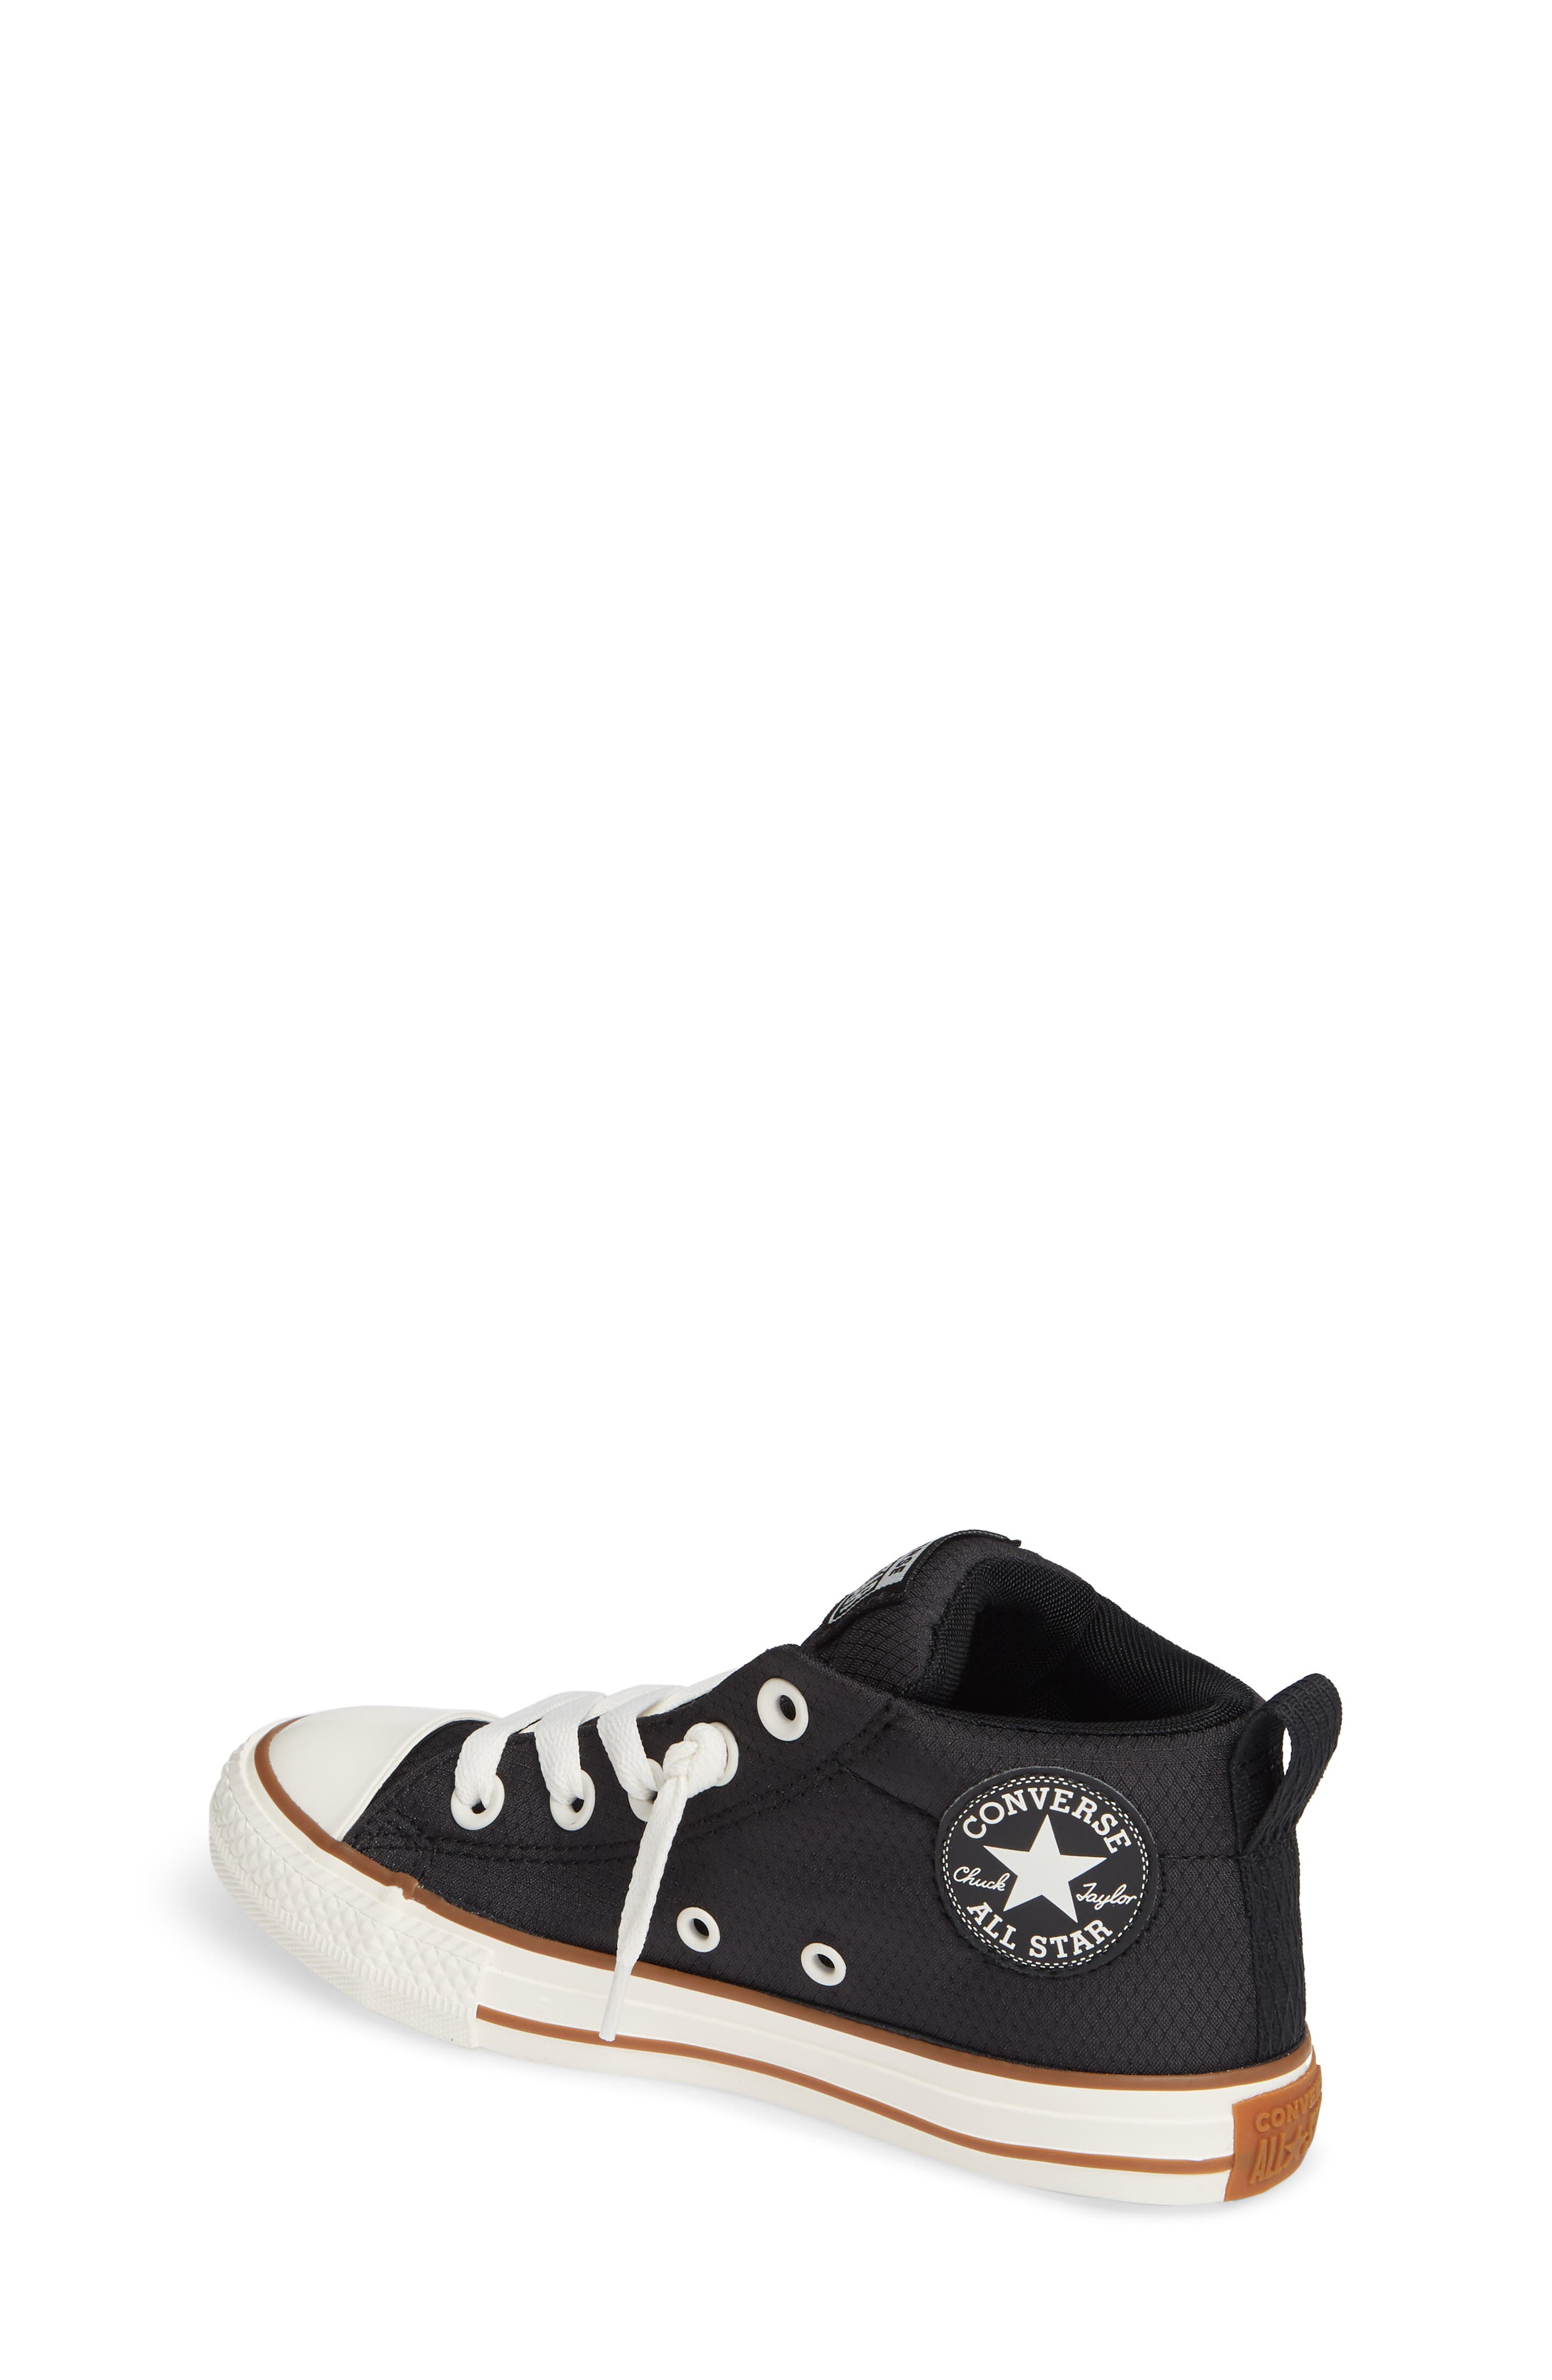 Chuck Taylor<sup>®</sup> All Star<sup>®</sup> Street Mid Top Sneaker,                             Alternate thumbnail 2, color,                             BLACK/ GUM/ EGRET